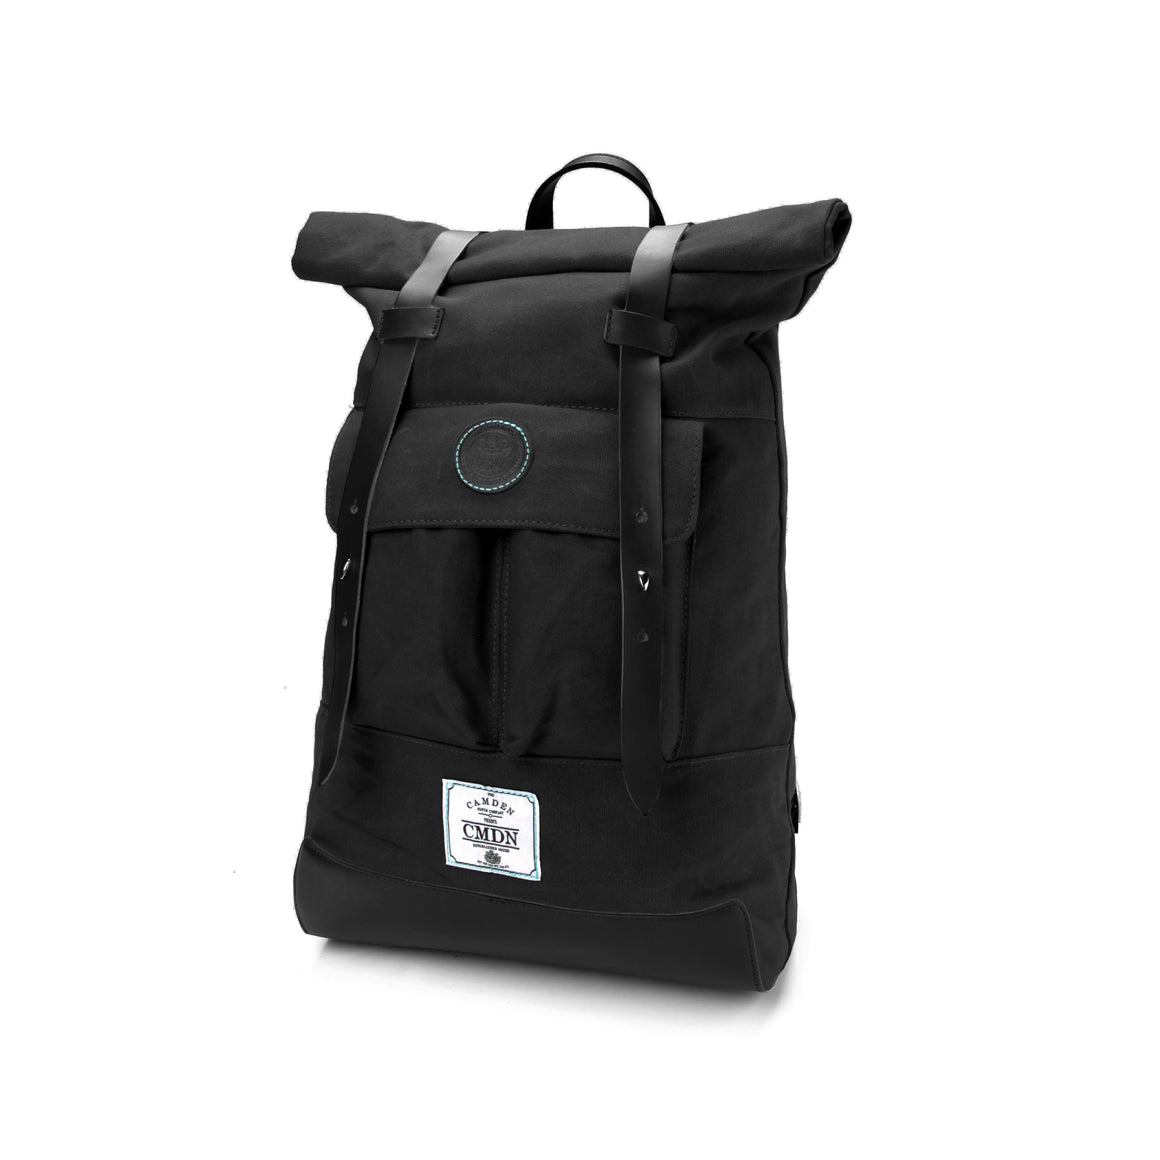 Backpack - Black Waxed Canvas Backpack